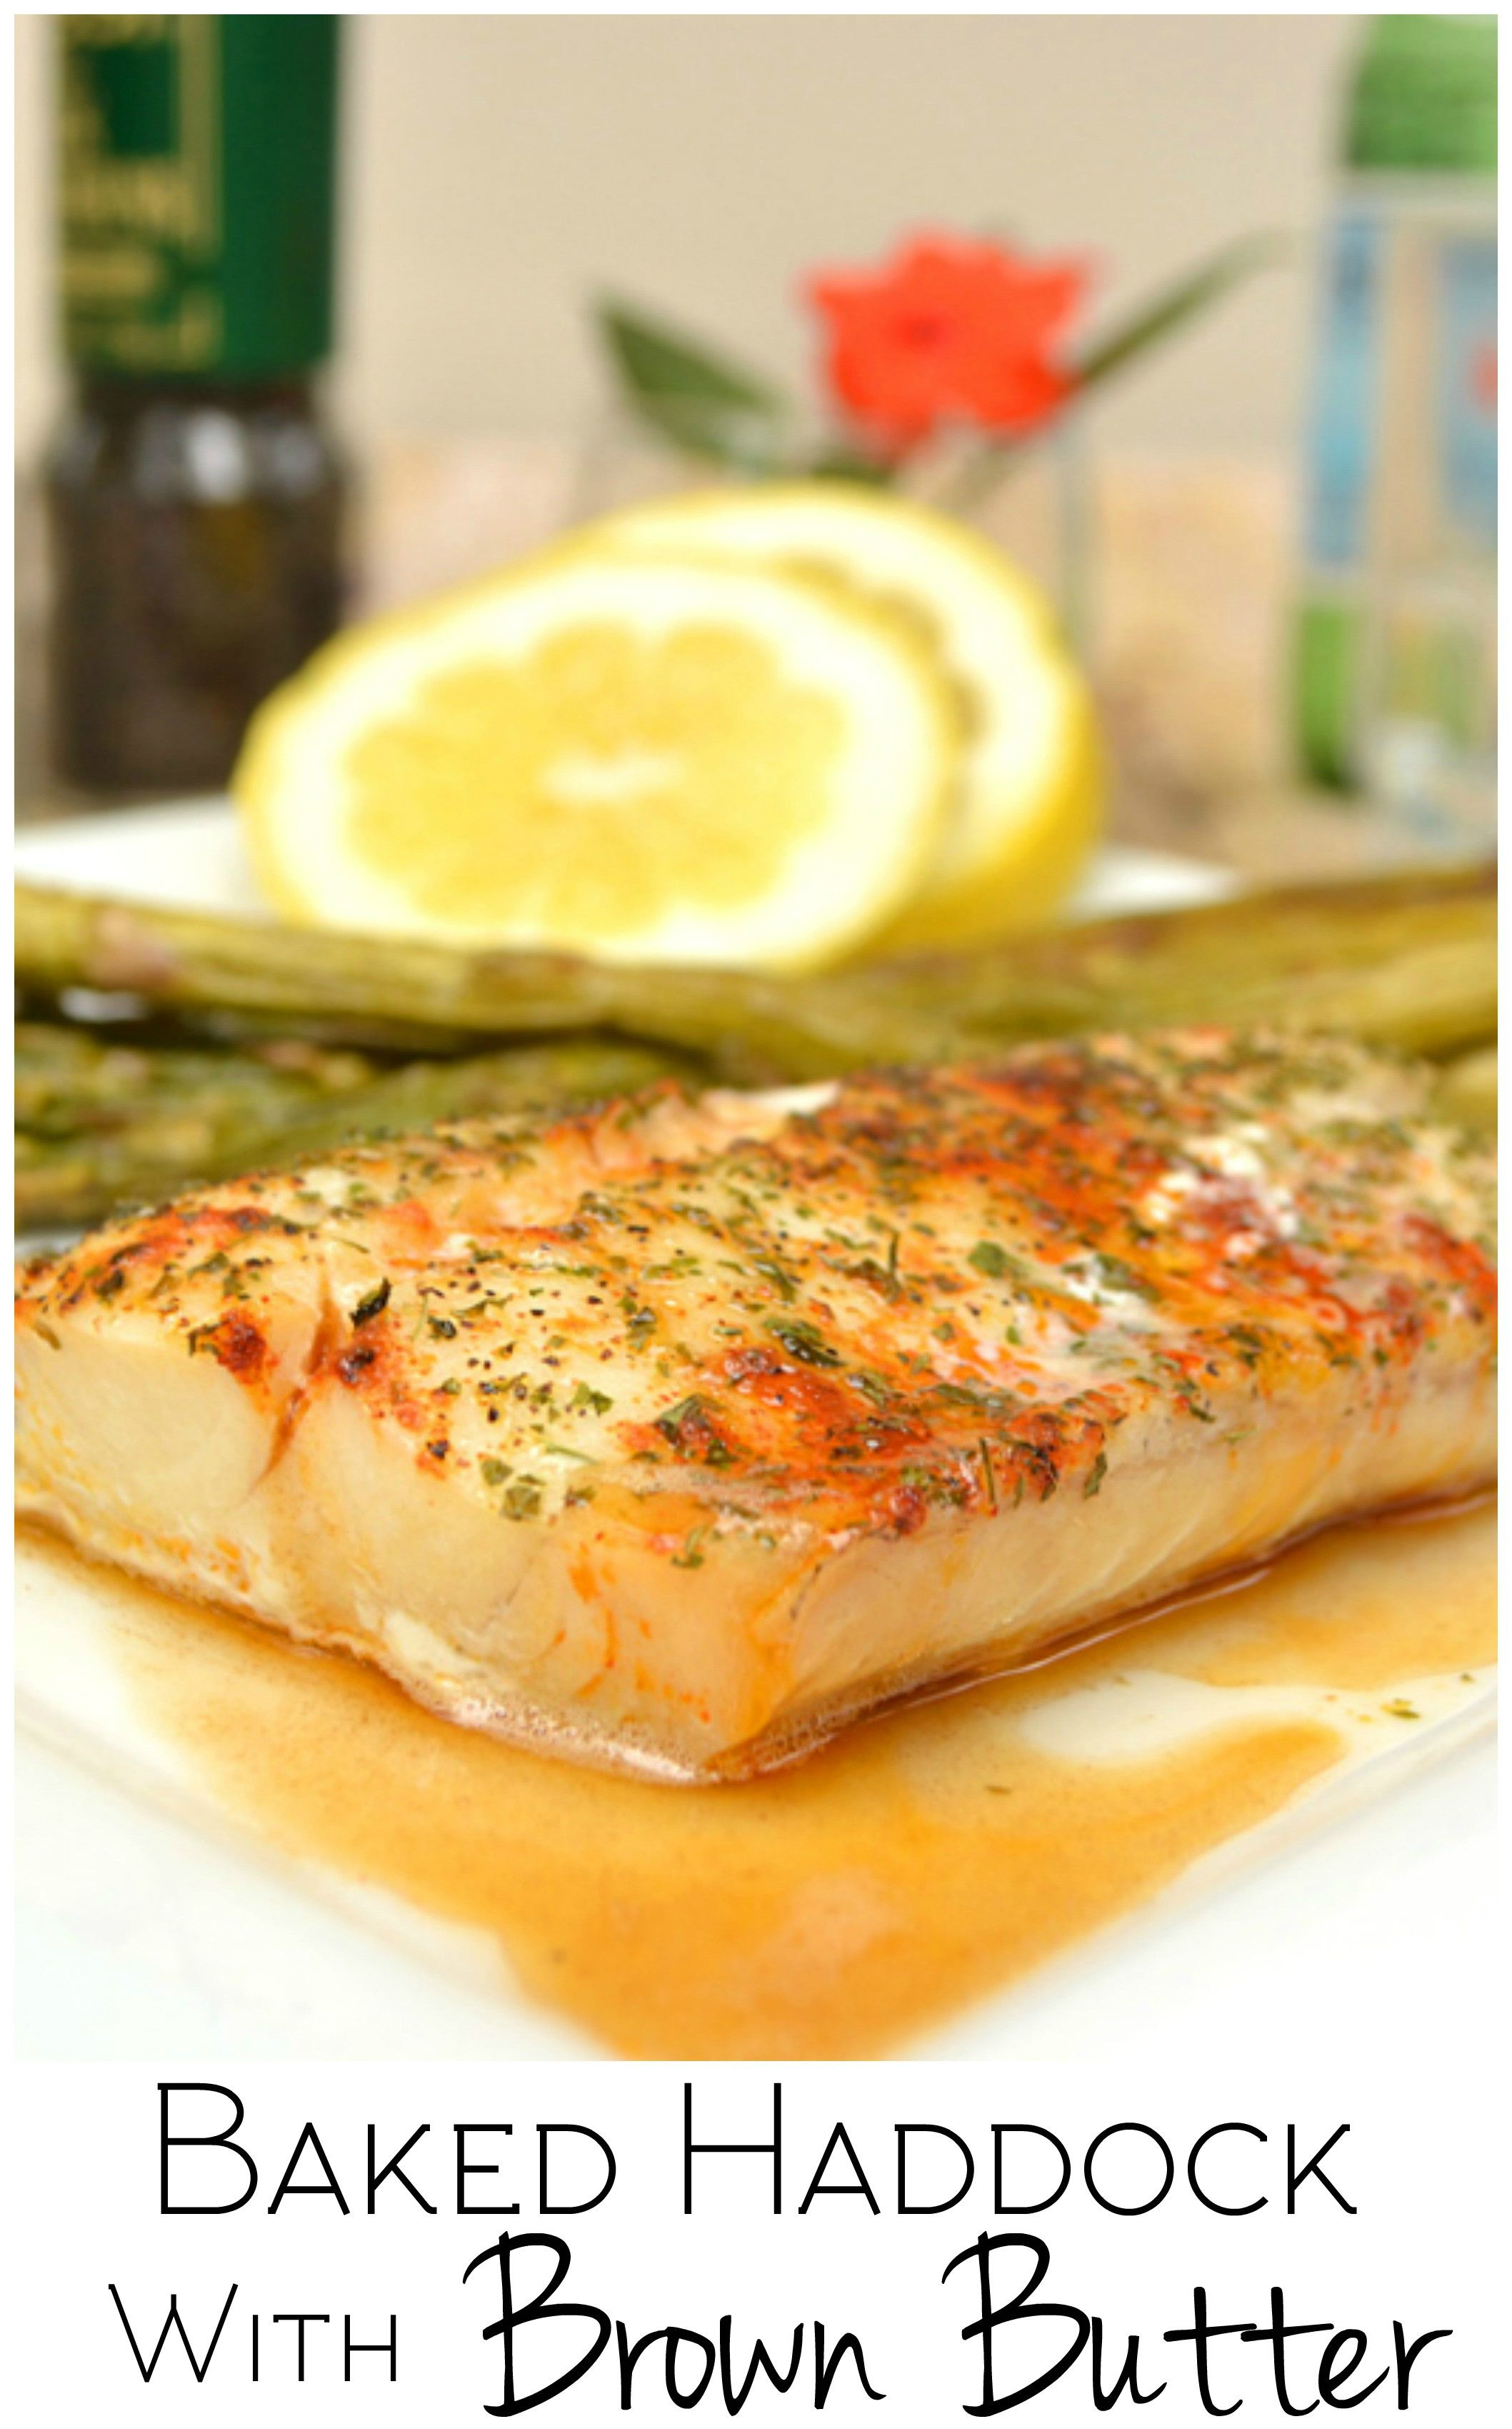 Haddock Cooking Recipes - Tasty, Fast and Very Useful 95